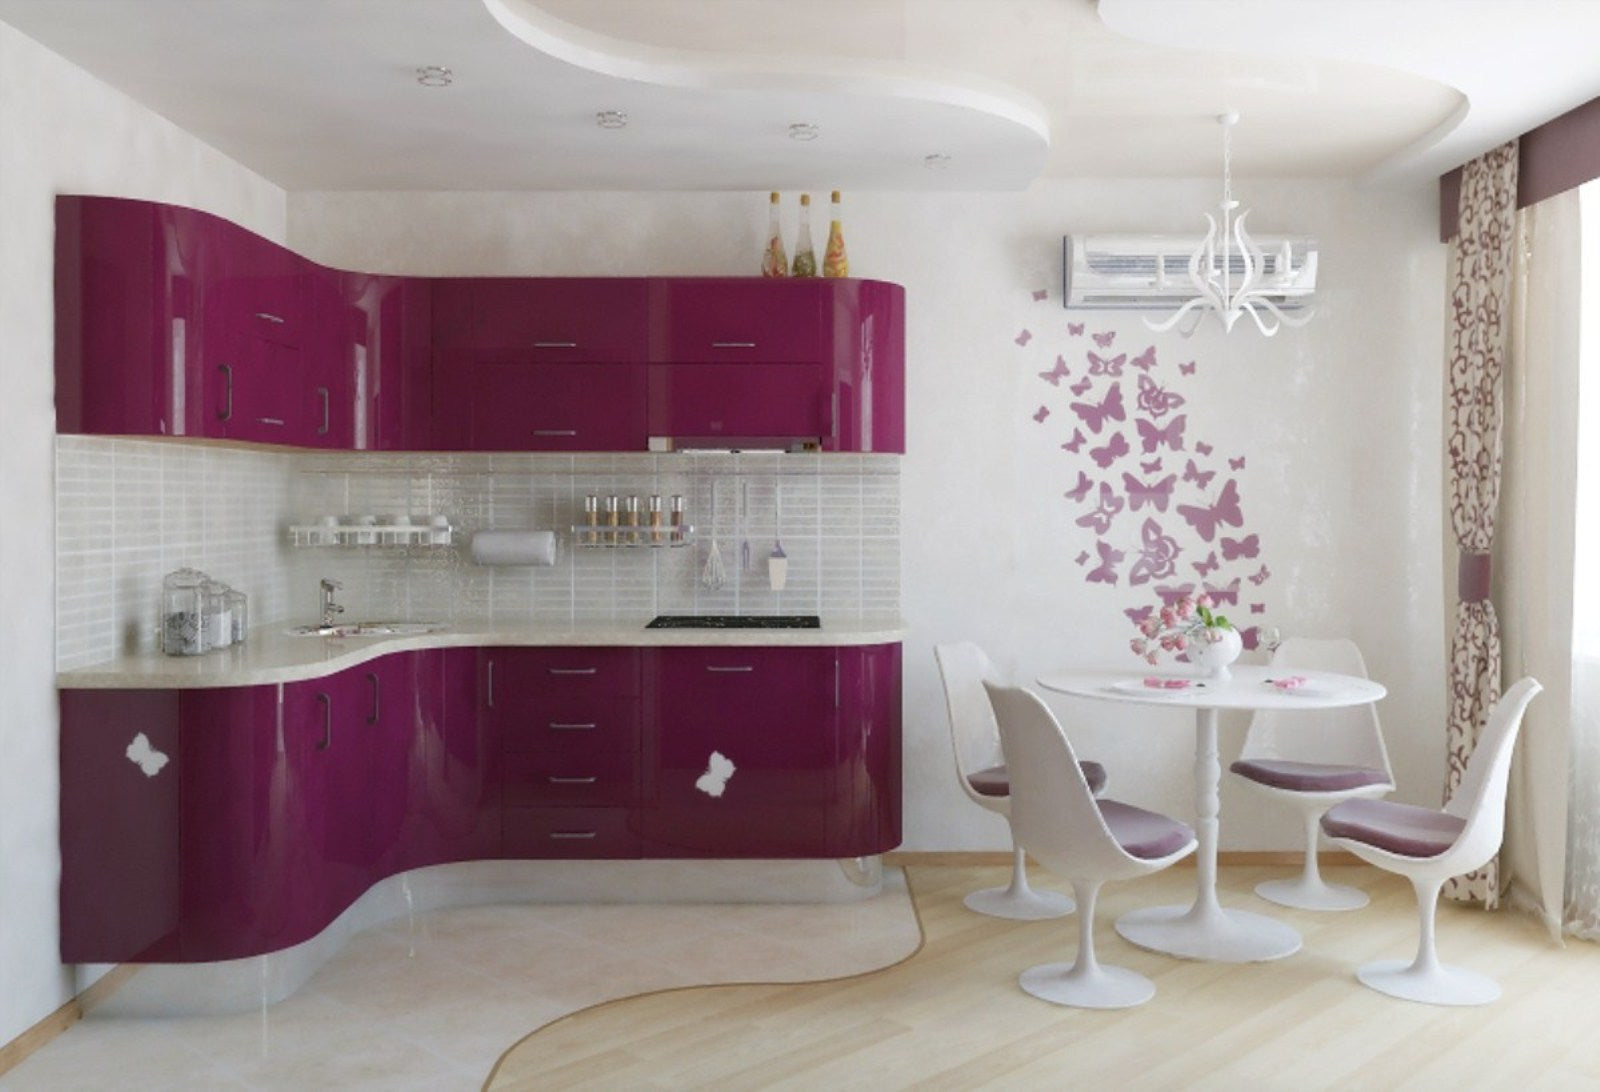 White kitchen with curved purple kitchen units